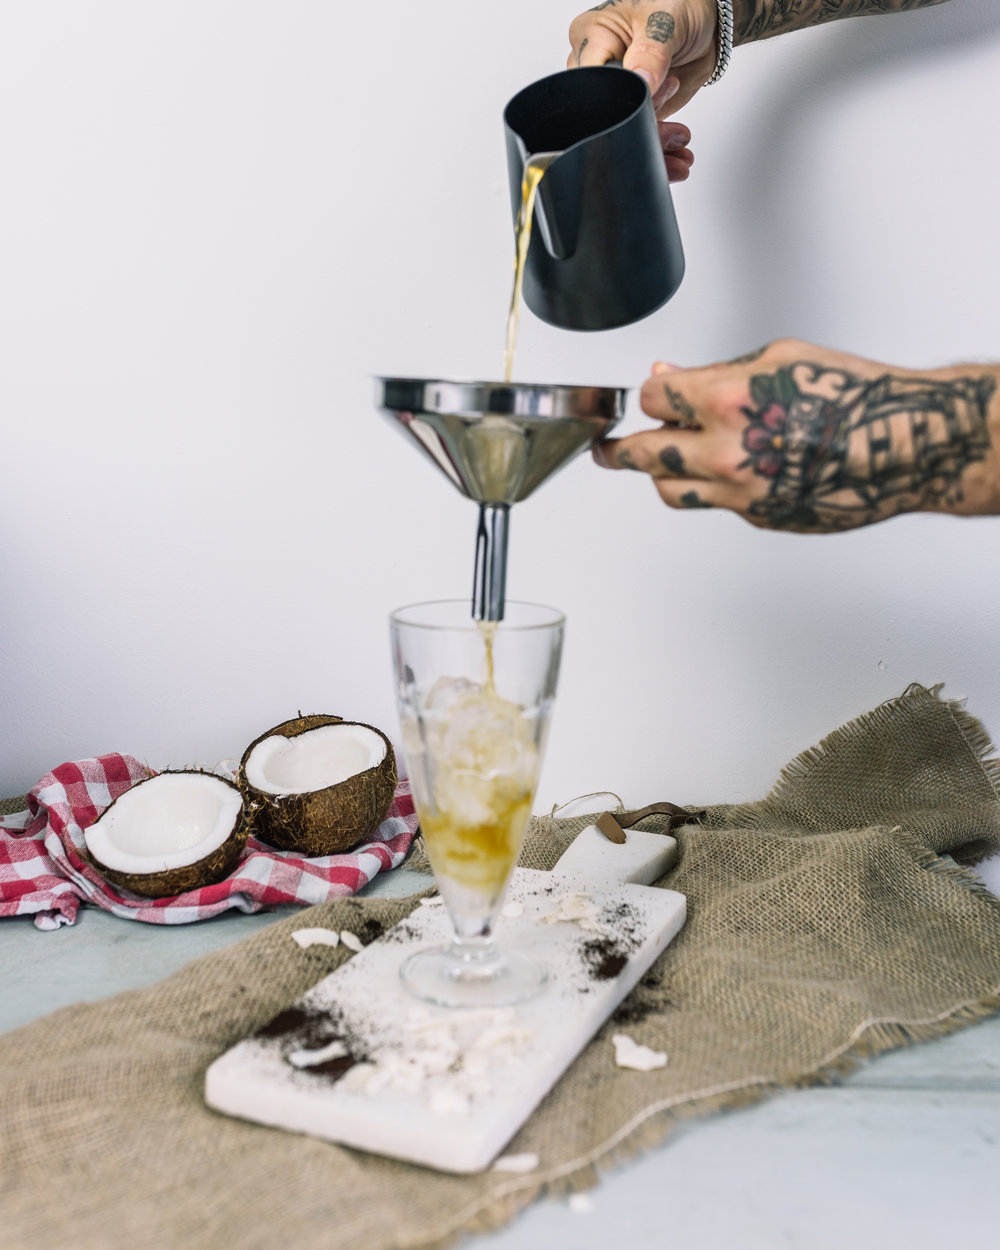 #2 Coconut ice drip coffee7.jpg